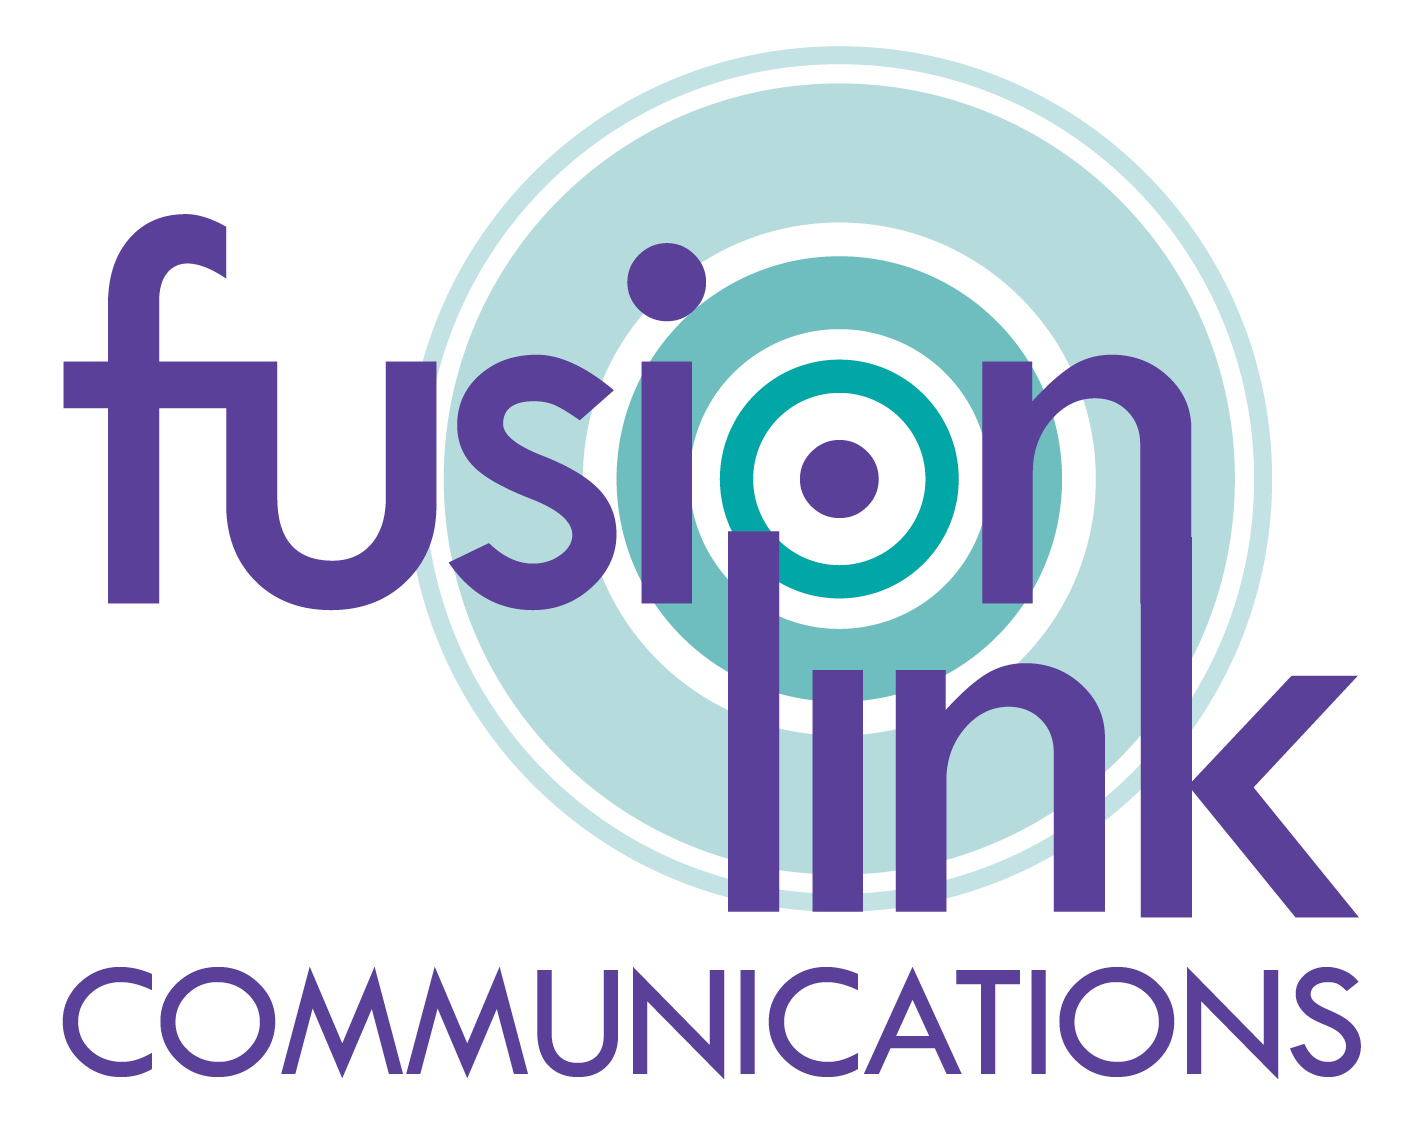 Fusion Link Communications LLC